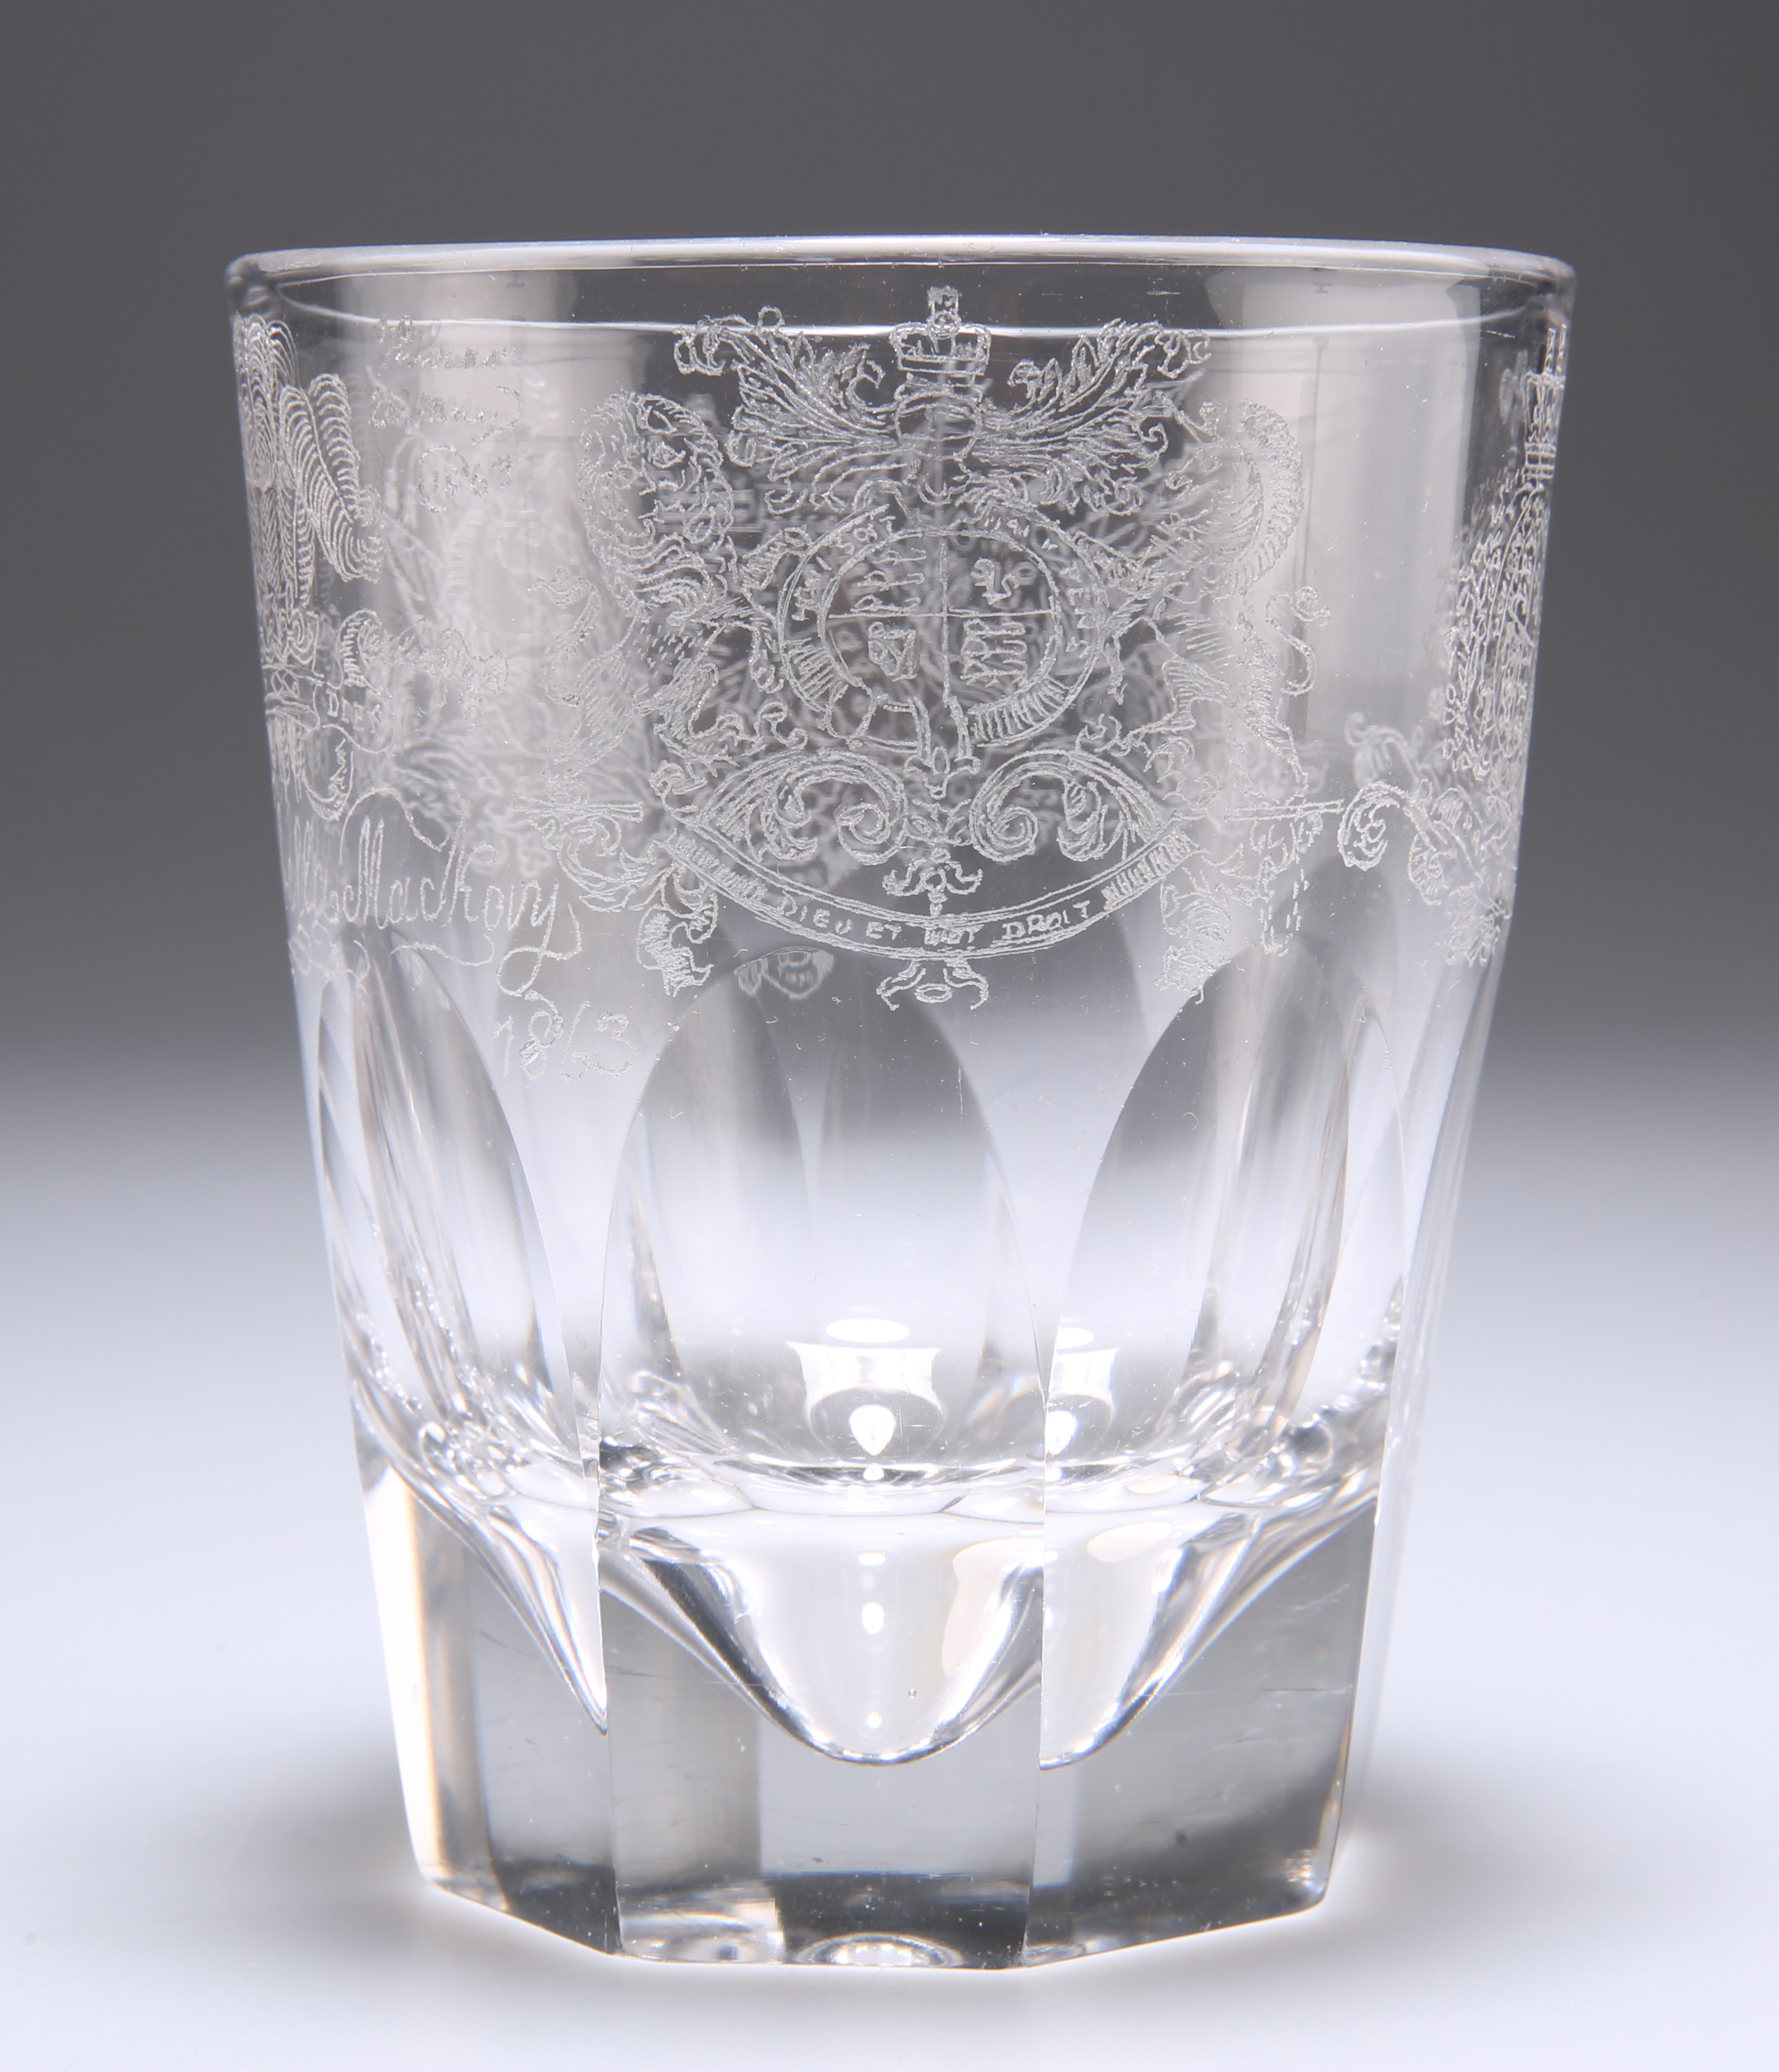 A VICTORIAN GLASS TUMBLER CUP, POSSIBLY BY THOMAS SUTHERLAND - Image 2 of 2